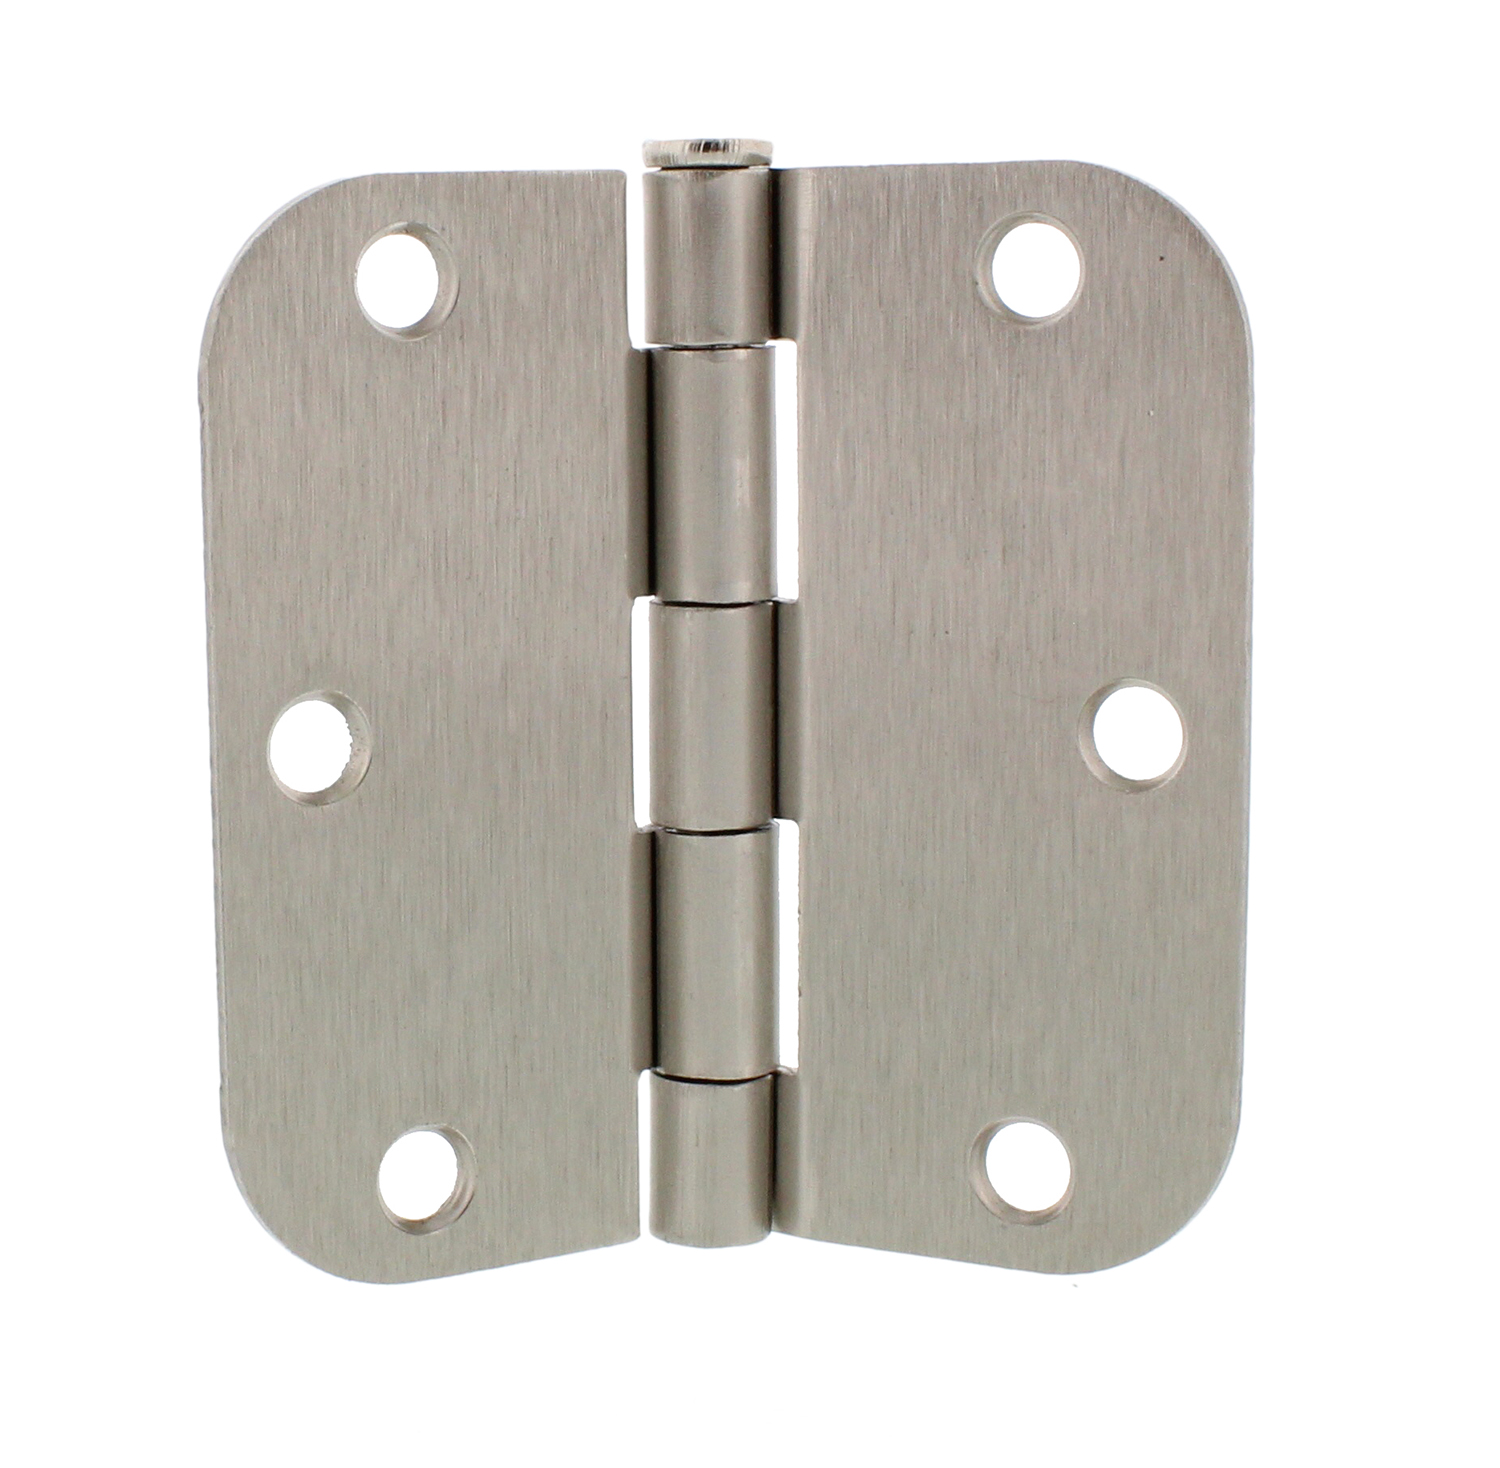 Charming 7Penn 3 5 Inch Steel Interior Door Hinge